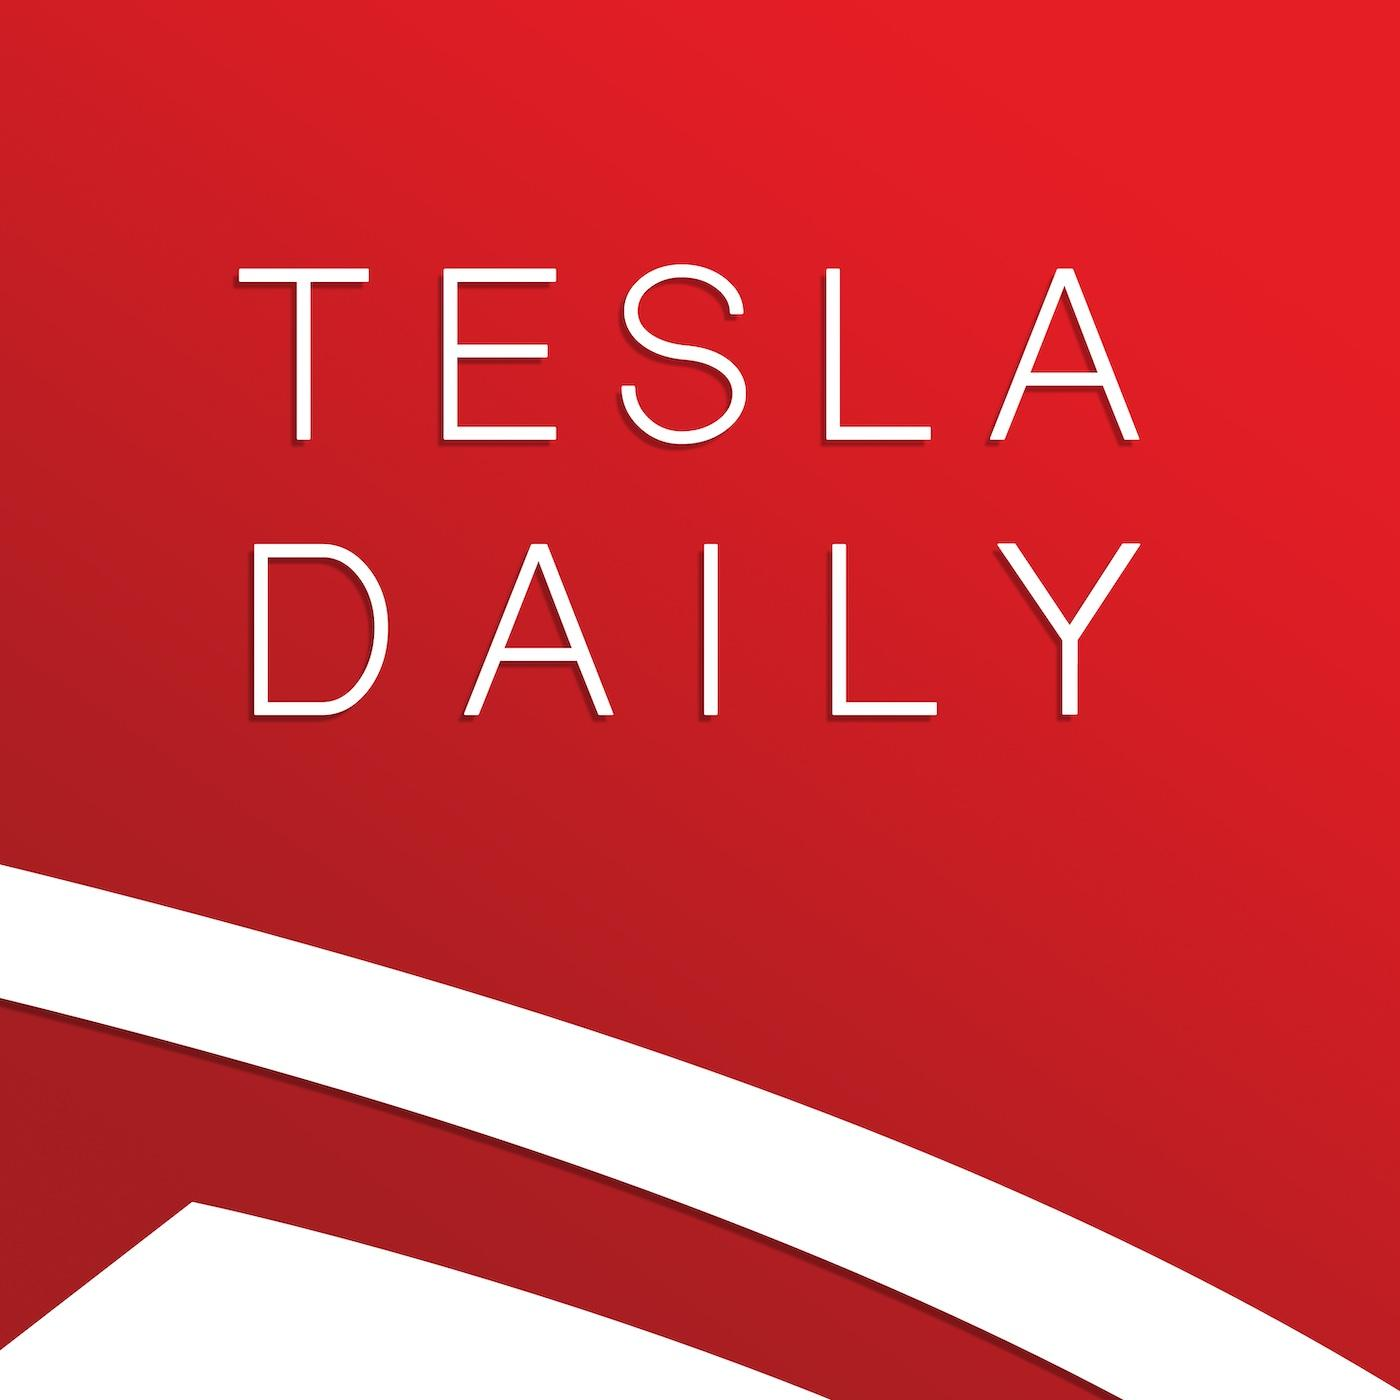 Valuation Increases by $40B+ in TSLA's Biggest Day Ever, Analysts Increase Price Targets, LG Chem Expands (07.06.20)